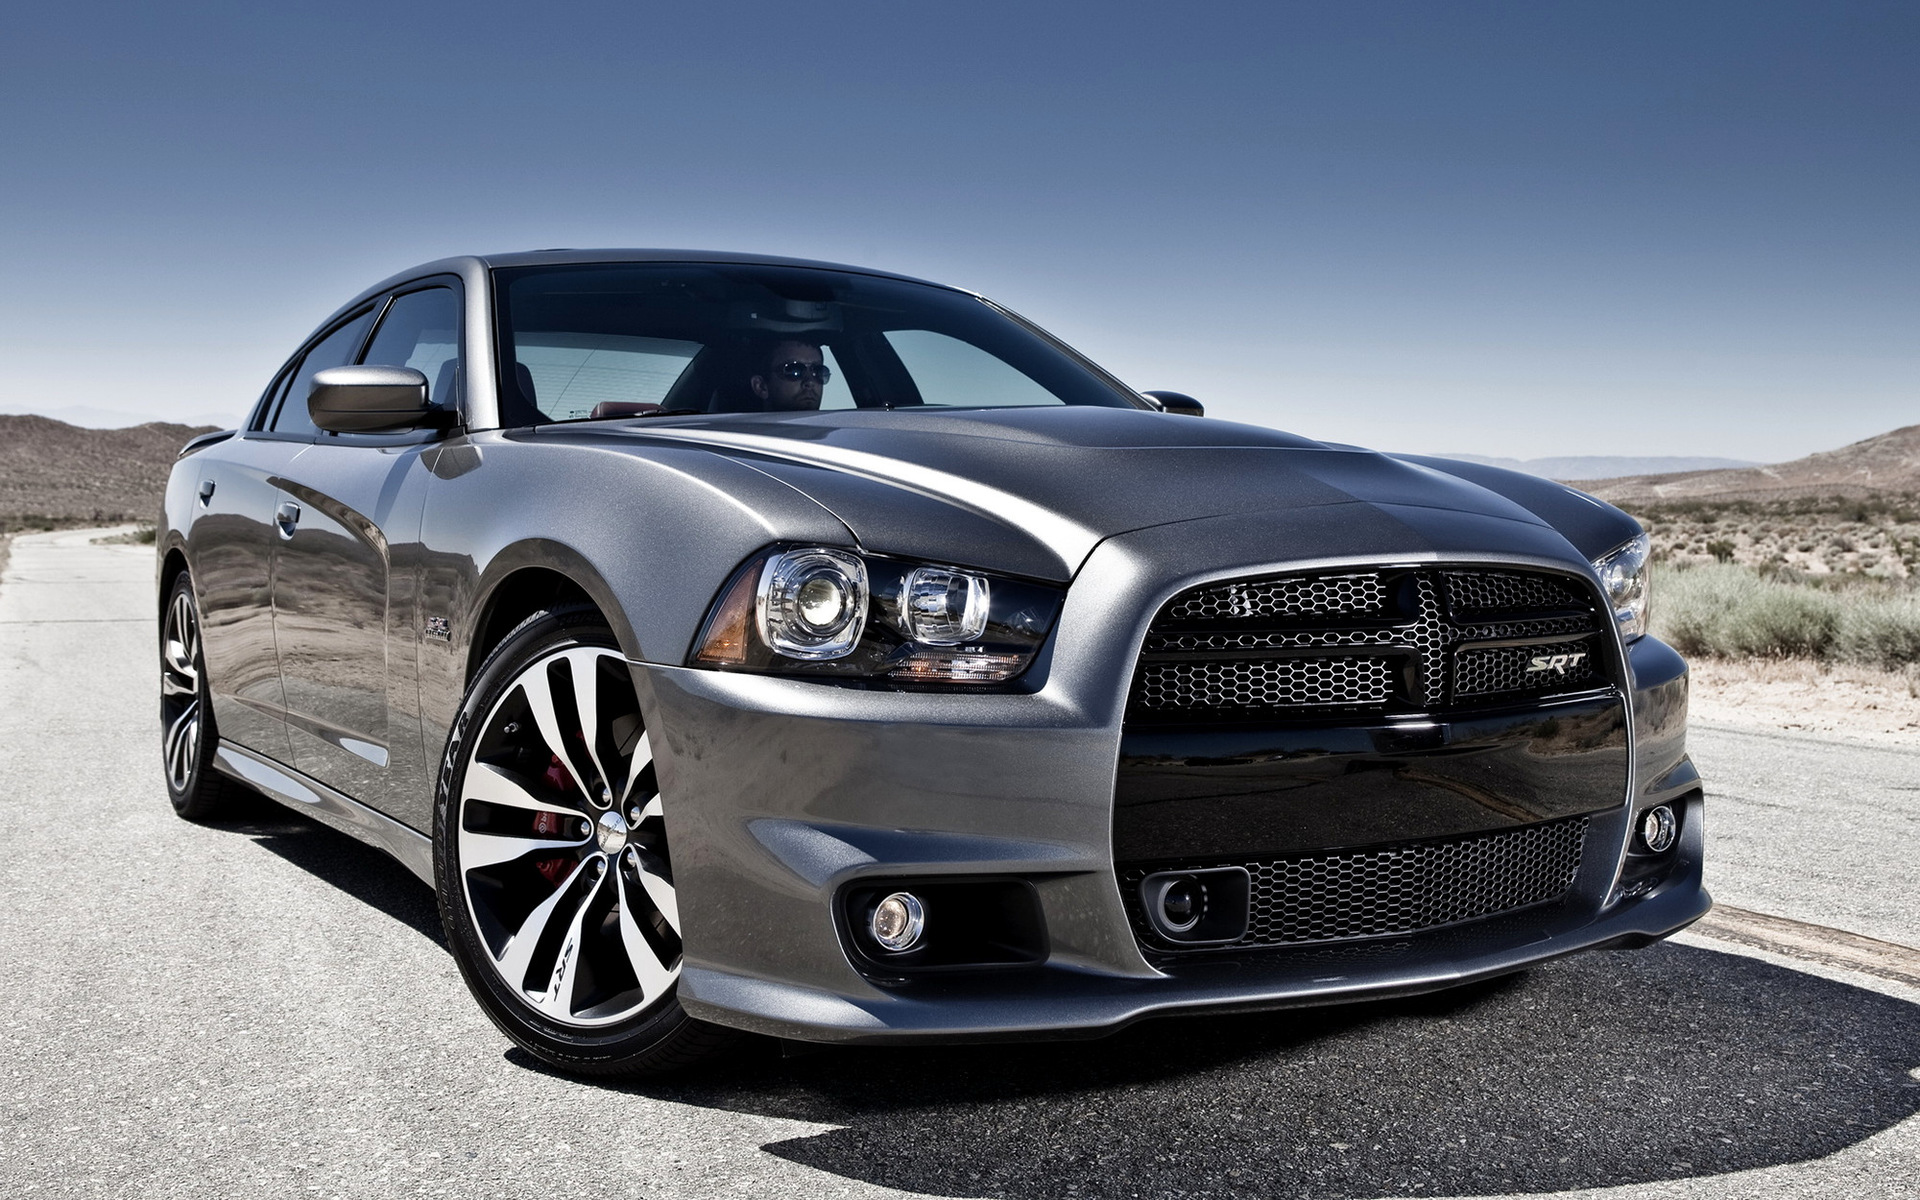 Dodge Charger Srt8 2012 Wallpapers And Hd Images Car Pixel